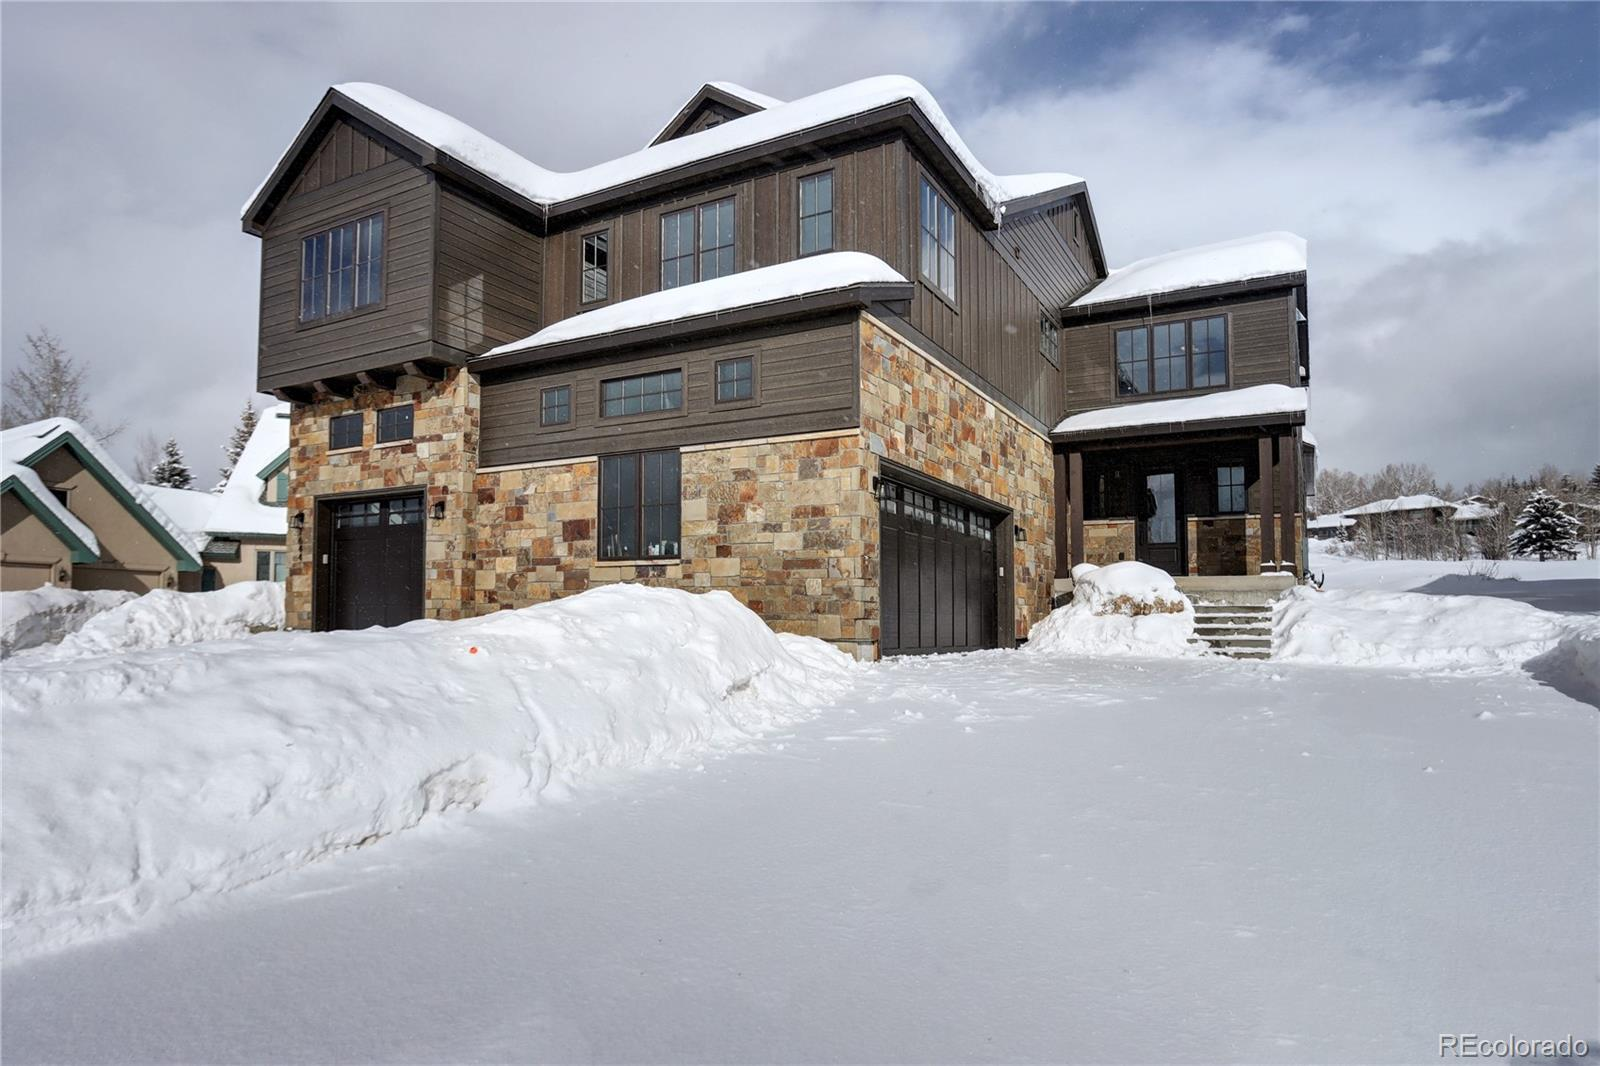 MLS# 4520884 - 1 - 1646 Cornice Court, Steamboat Springs, CO 80487